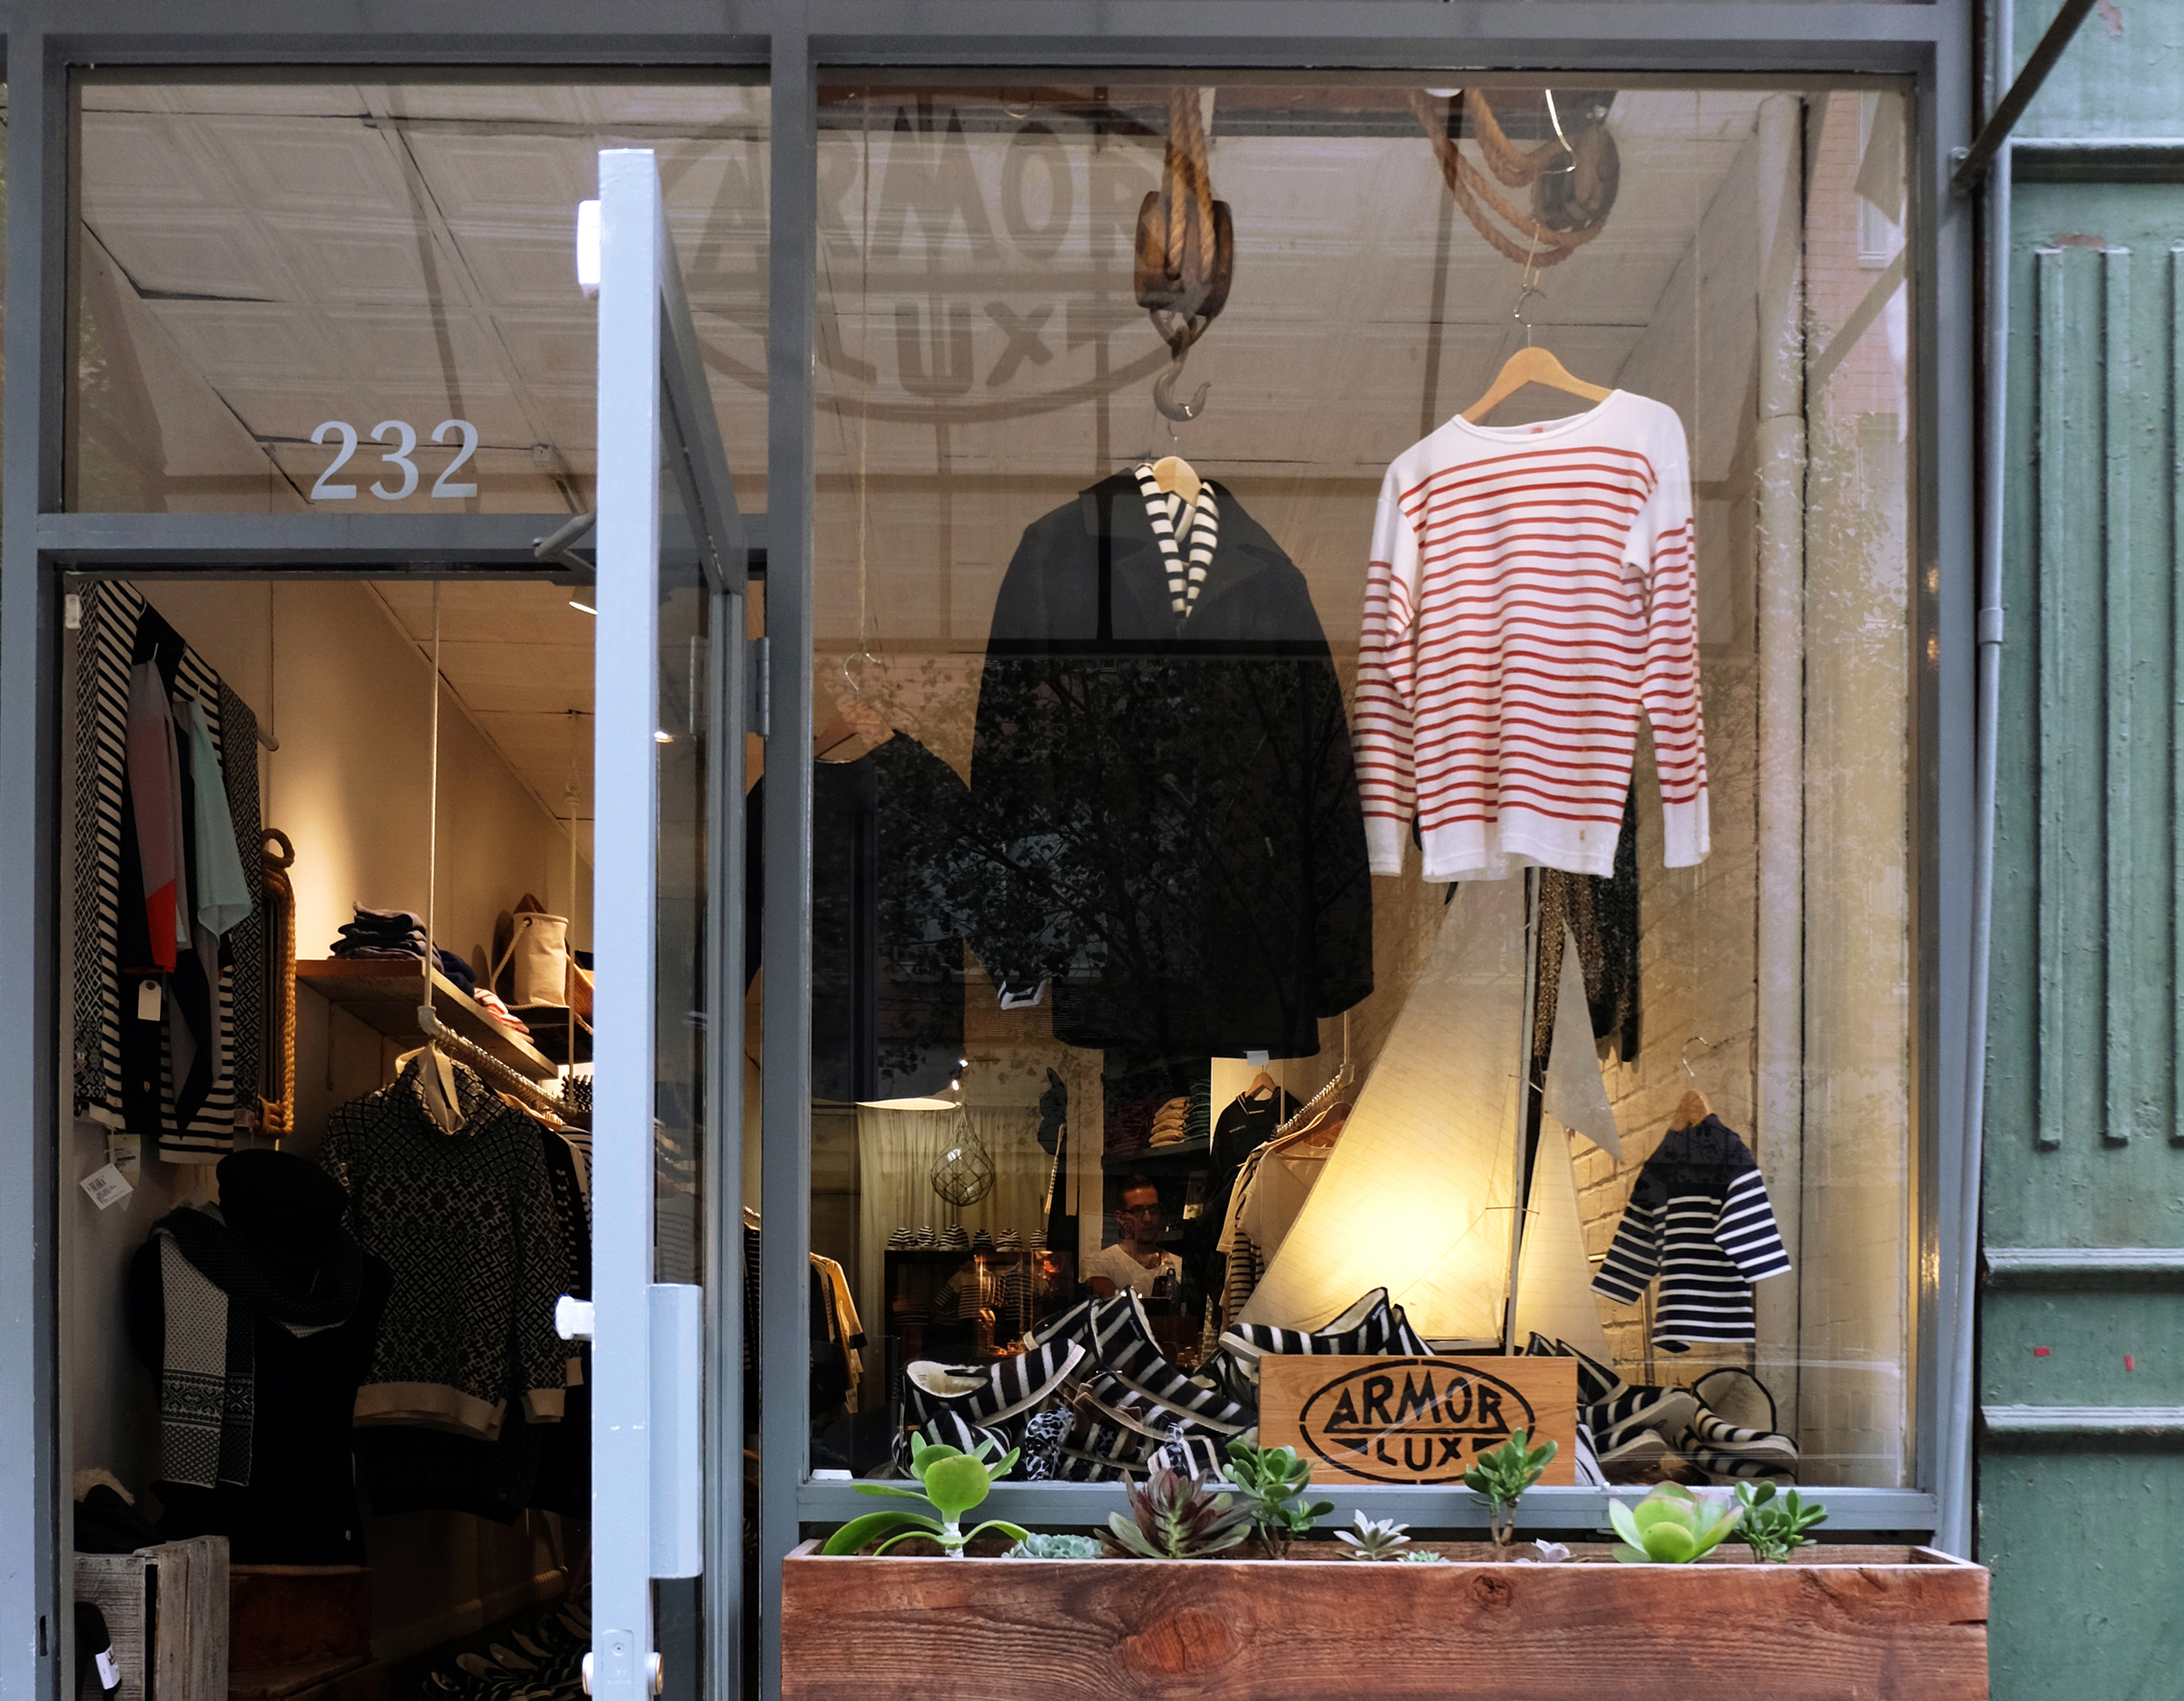 Armor Lux  /232 Mulberry Street. New York, NY 10012 /917-261-5567  You can find some iconic breton striped tees and sweaters here. But I tend to gravitate towards the Stutterheims and the Grundens at this store. They're also one of the rarer stores that carry  Samuji , a brand I have been on the look out for.